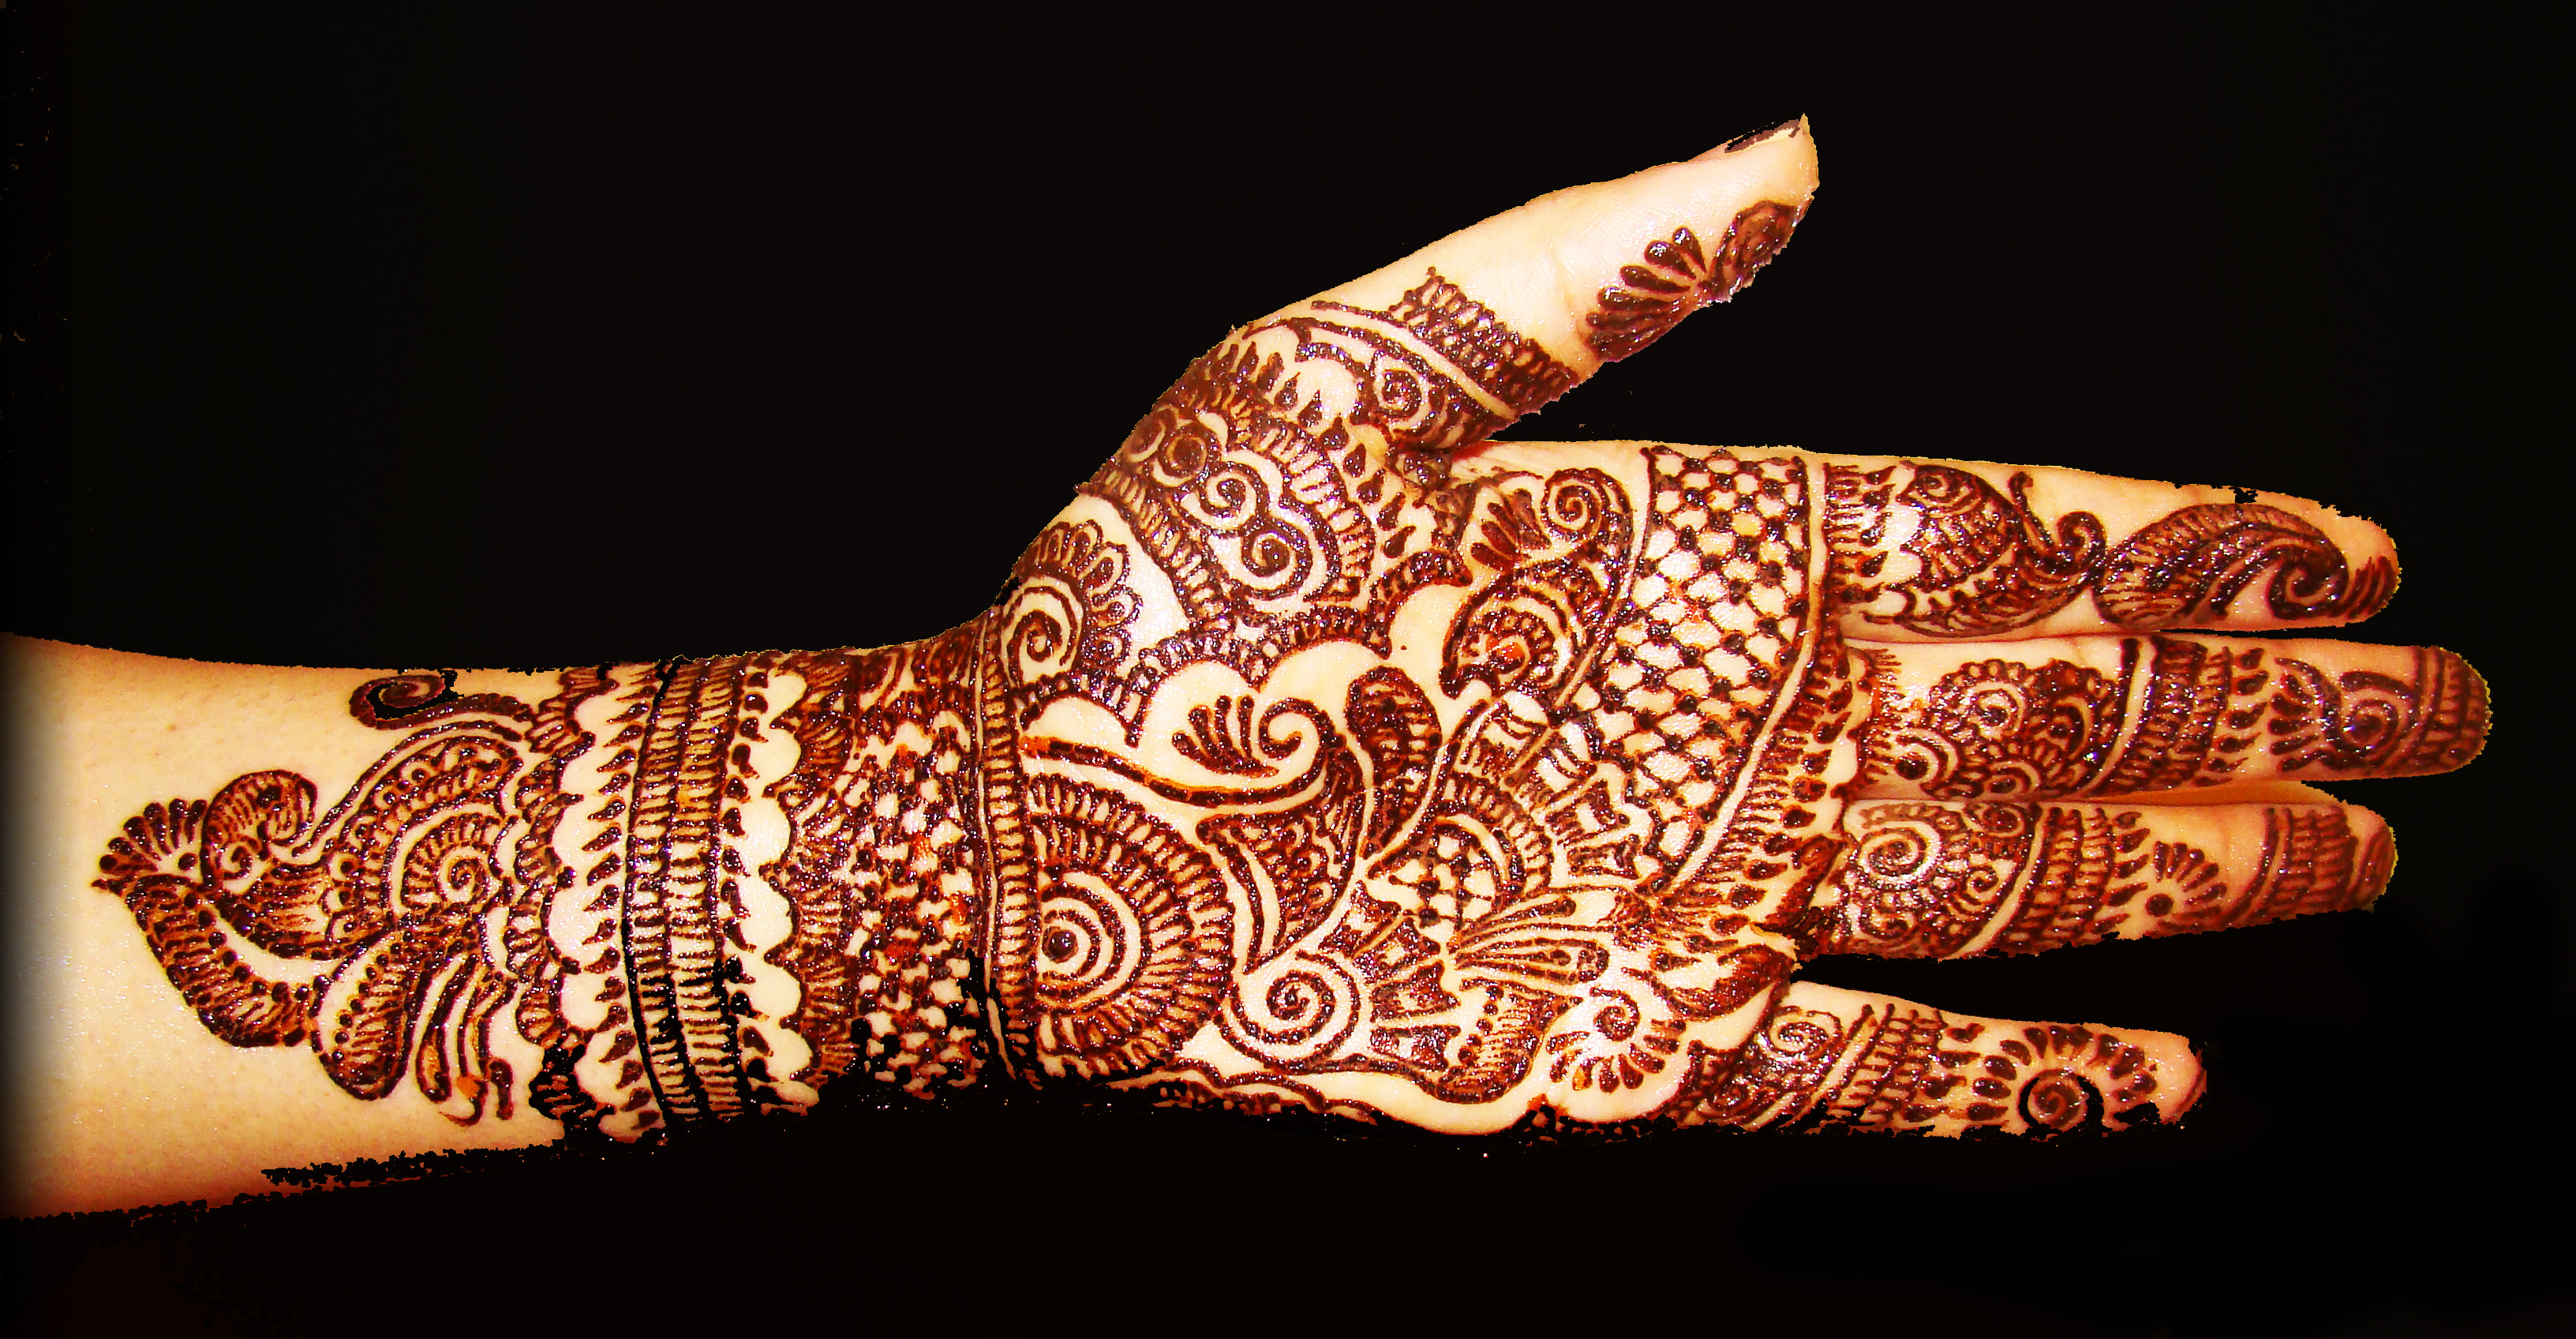 An arm decorated with henna designs